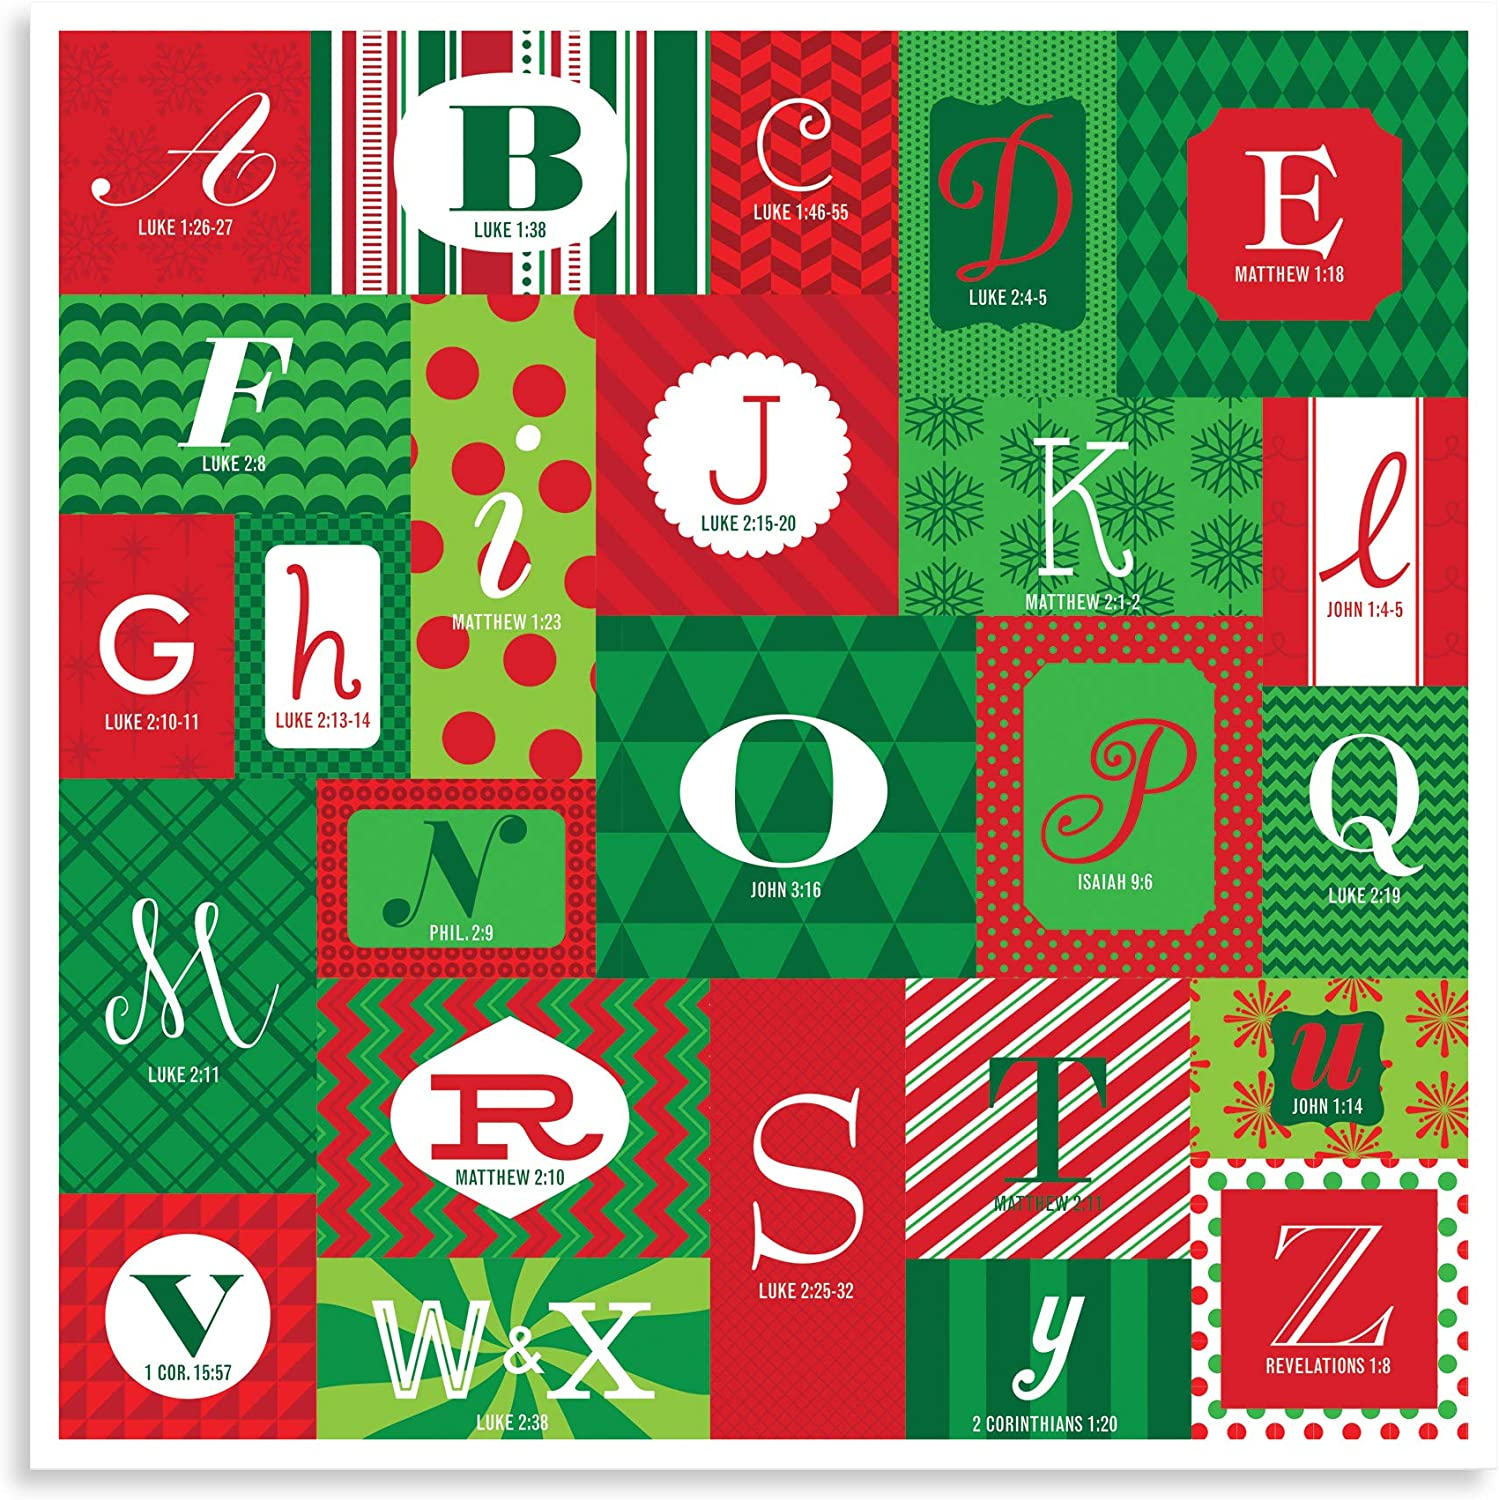 Amazon Com Lighthouse Christian Products Holiday Abc S Festive Season 12 X 12 Cardstock Paper Advent Calendar Home Kitchen